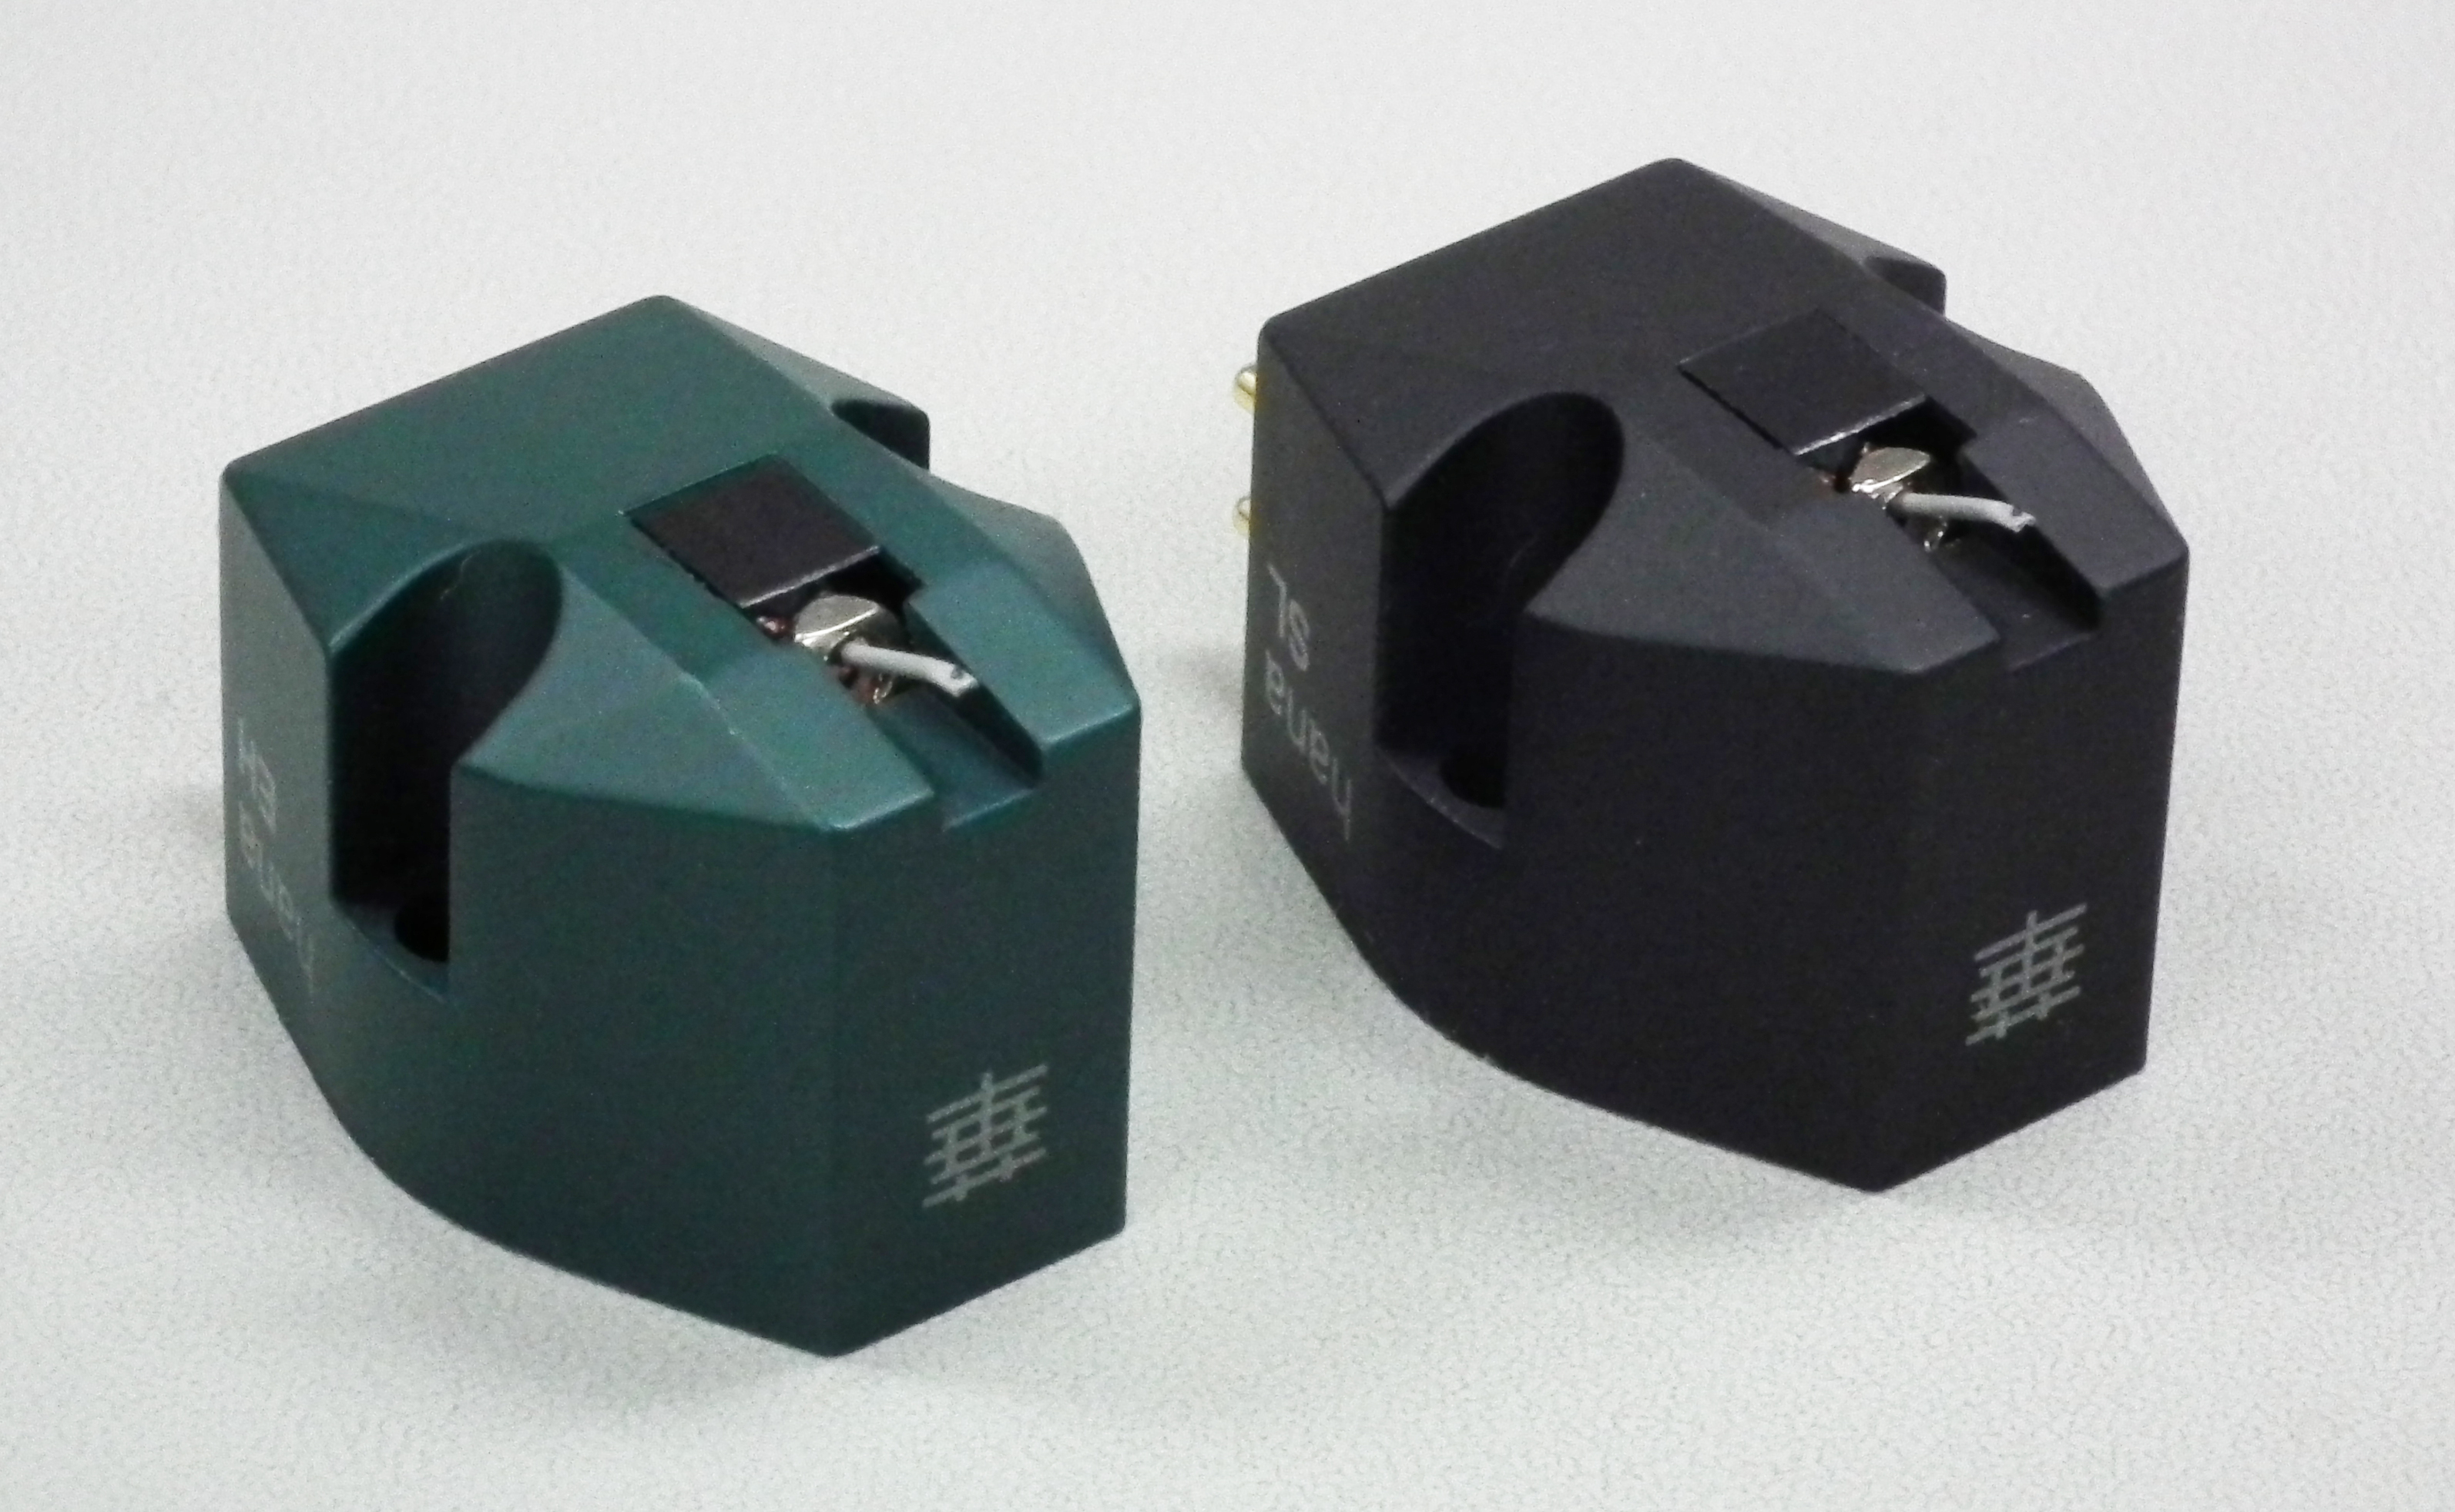 Hana stereo cartridges